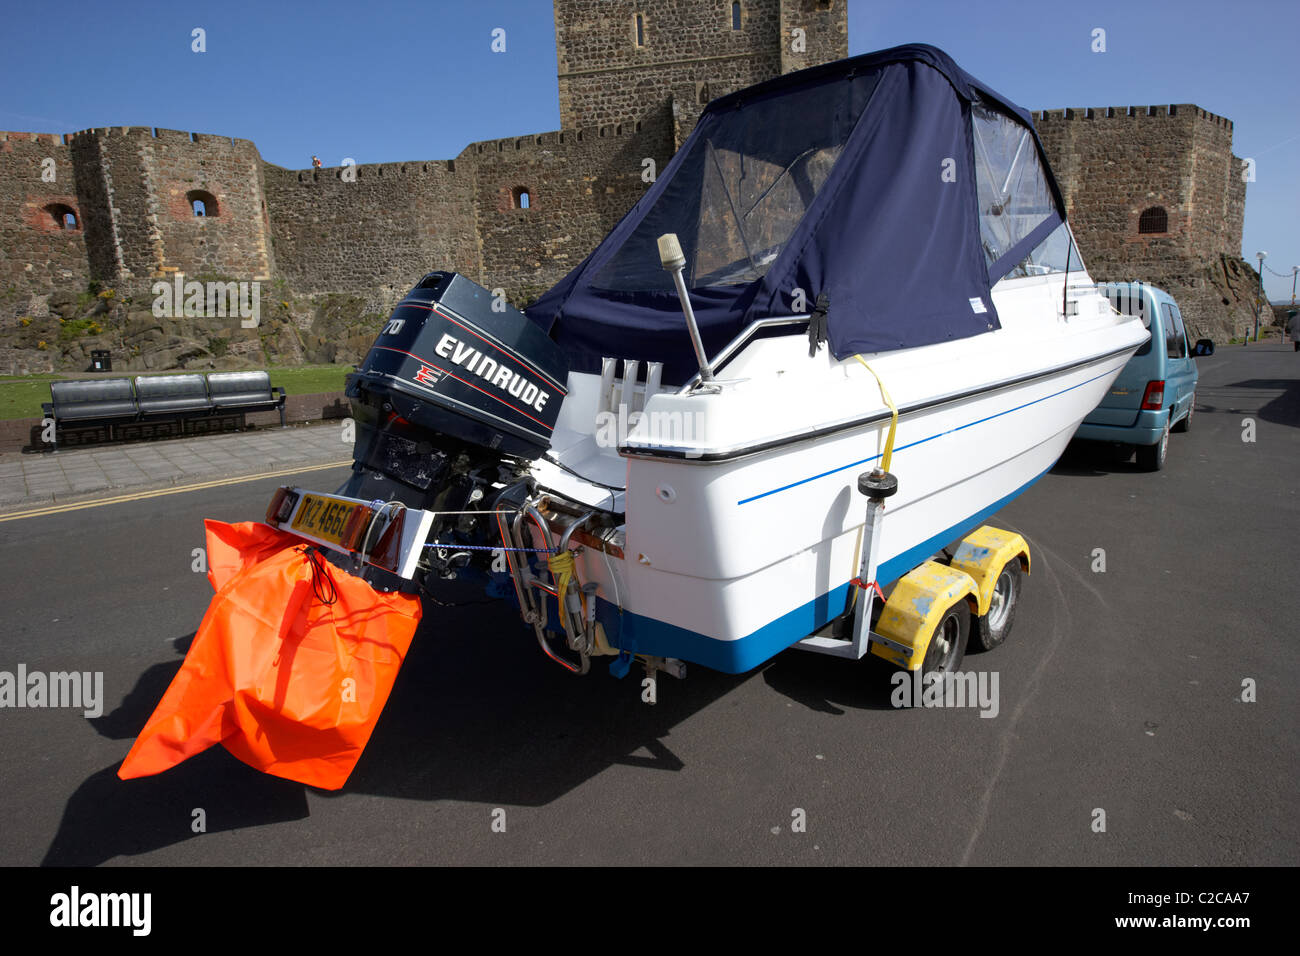 outboard engines trailer light board and high visibility prop covers on a boat being towed in the uk - Stock Image